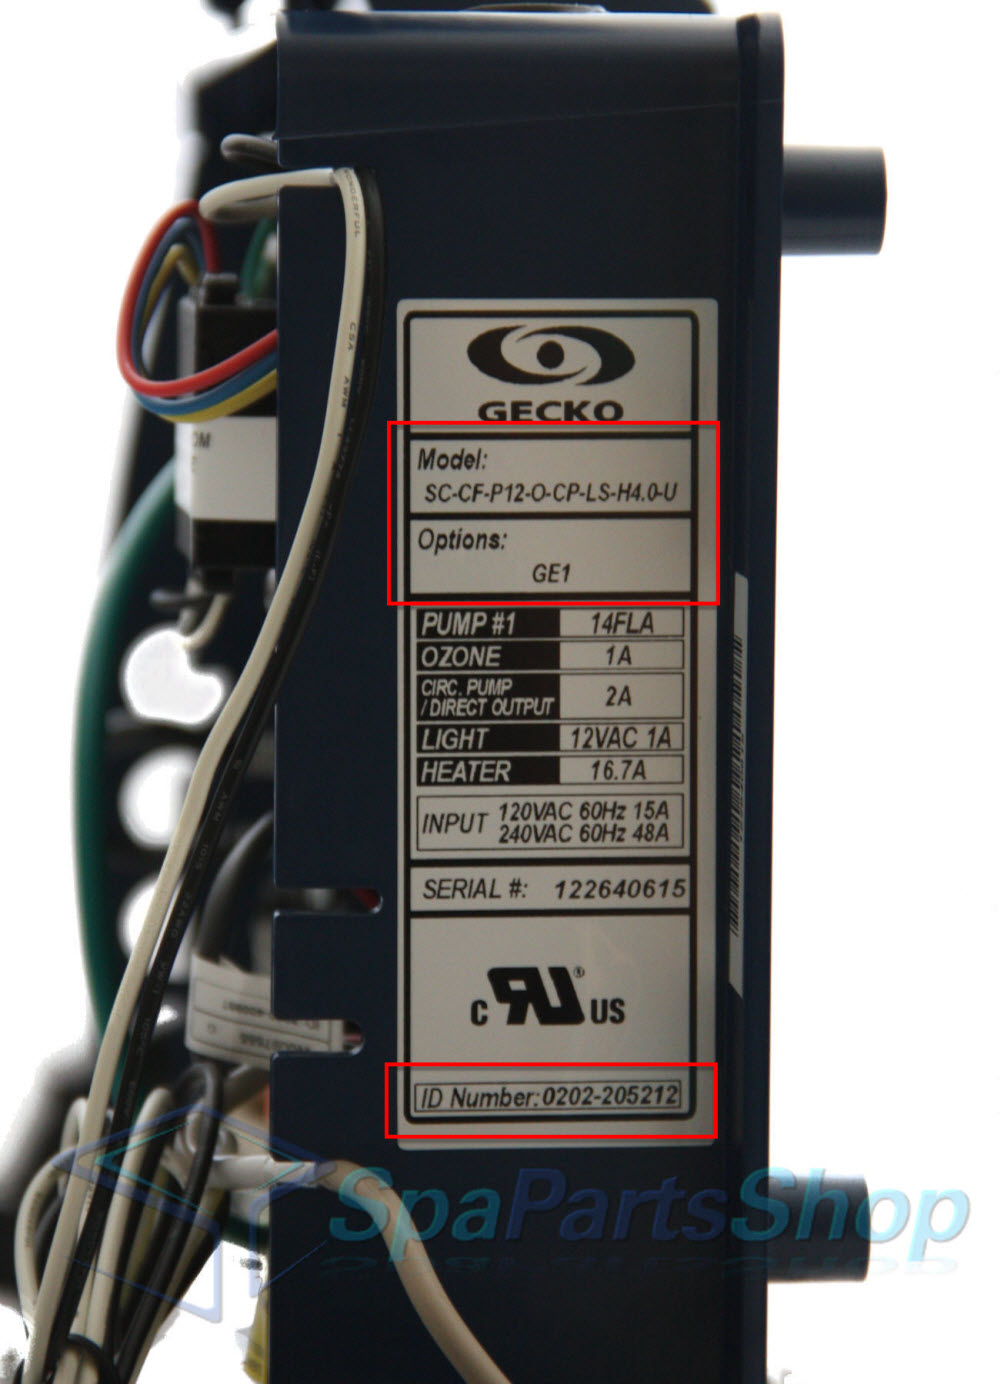 hight resolution of the circuit board modules in gecko m class control boxes are replaceable which gives two options repair or replace replacing the board module yourself